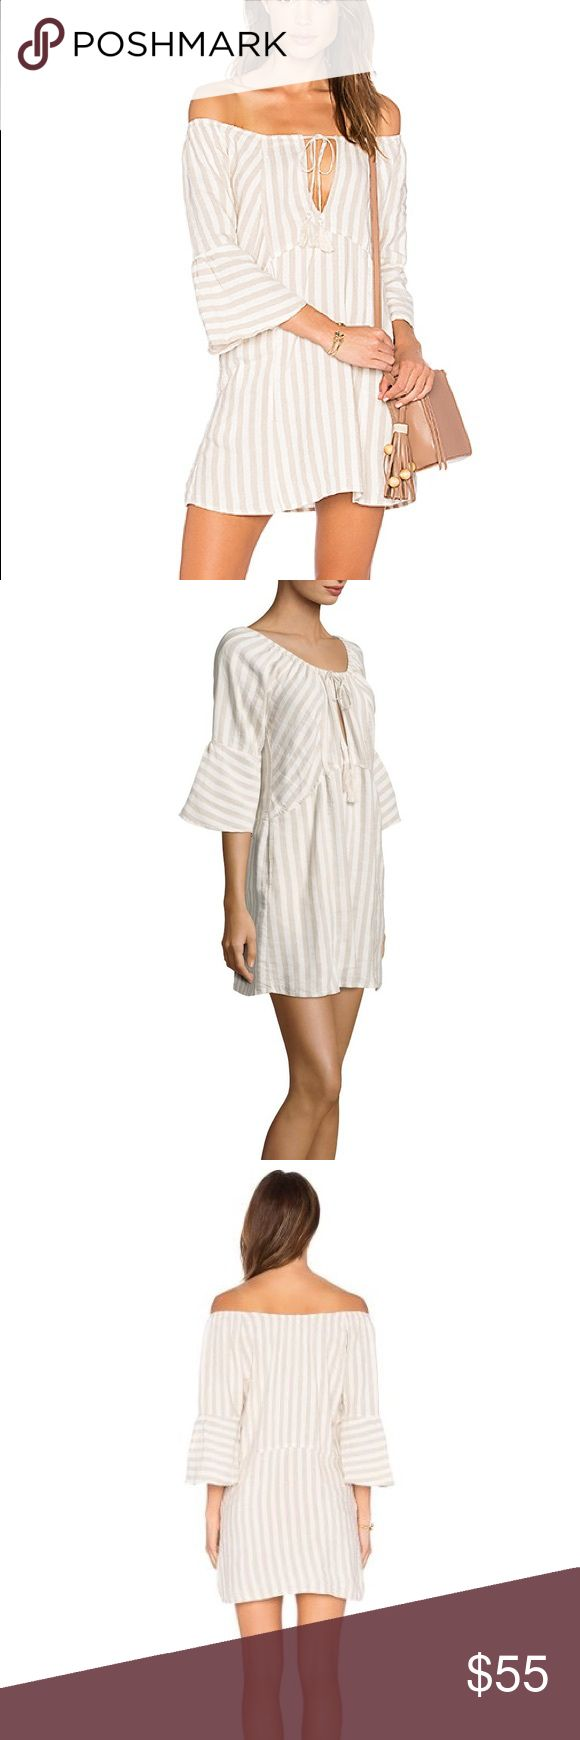 Free People Folk Town Boho Dress S Neutral stripes add to the rustic appeal of this crisp woven tunic by Free People. Featuring tassel-tipped neckline ties and flared sleeves, this summery mini dress is short and oh so sweet. 55% linen 45% rayon Unlined Front keyhole with tie closure Side seam pockets Flared sleeves Free People Dresses Mini